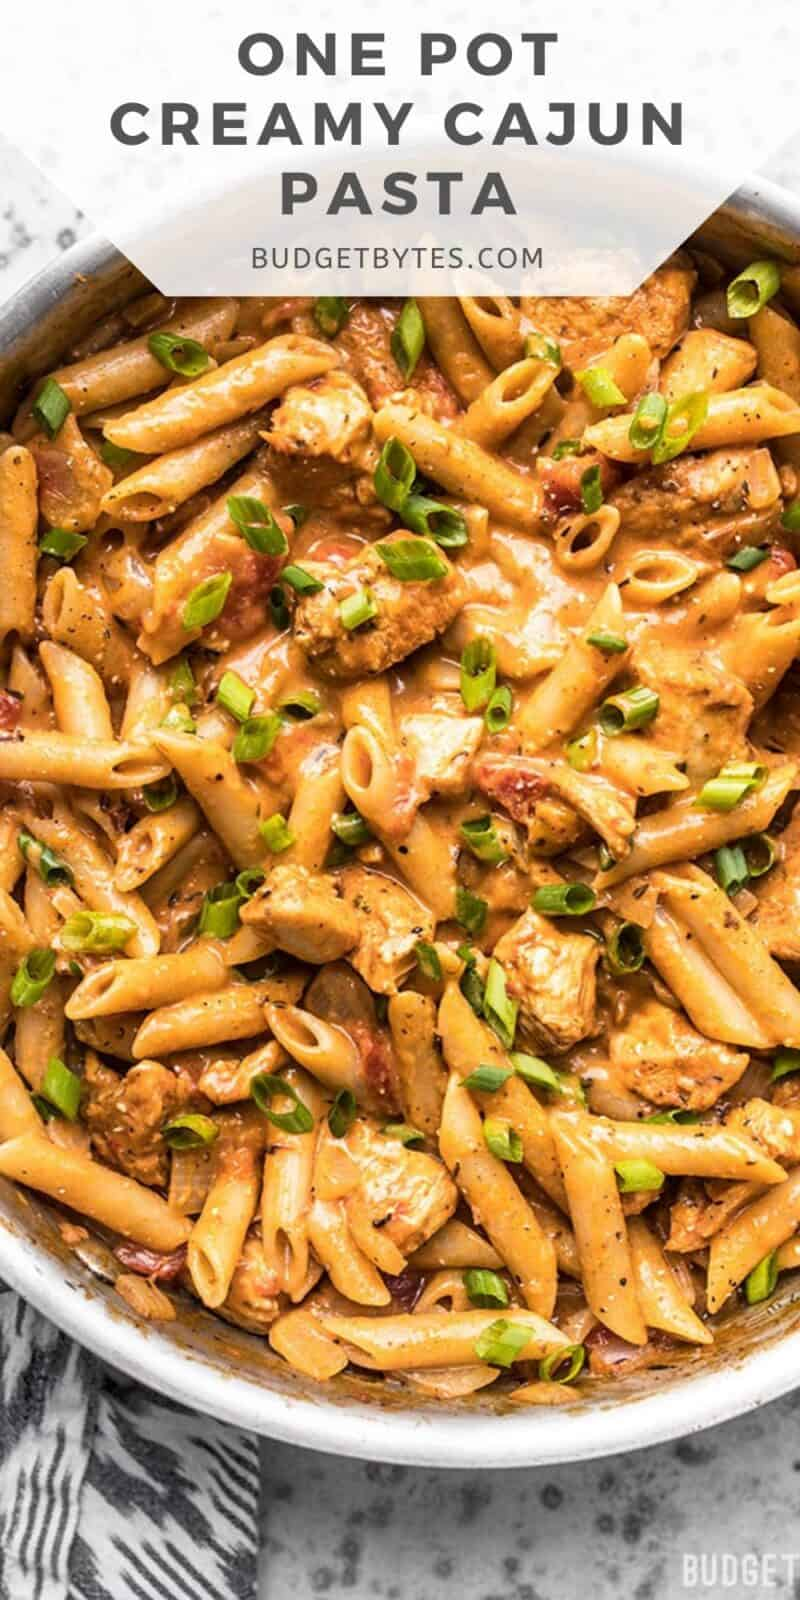 Overhead view of cajun chicken pasta in the skillet, title text at the top